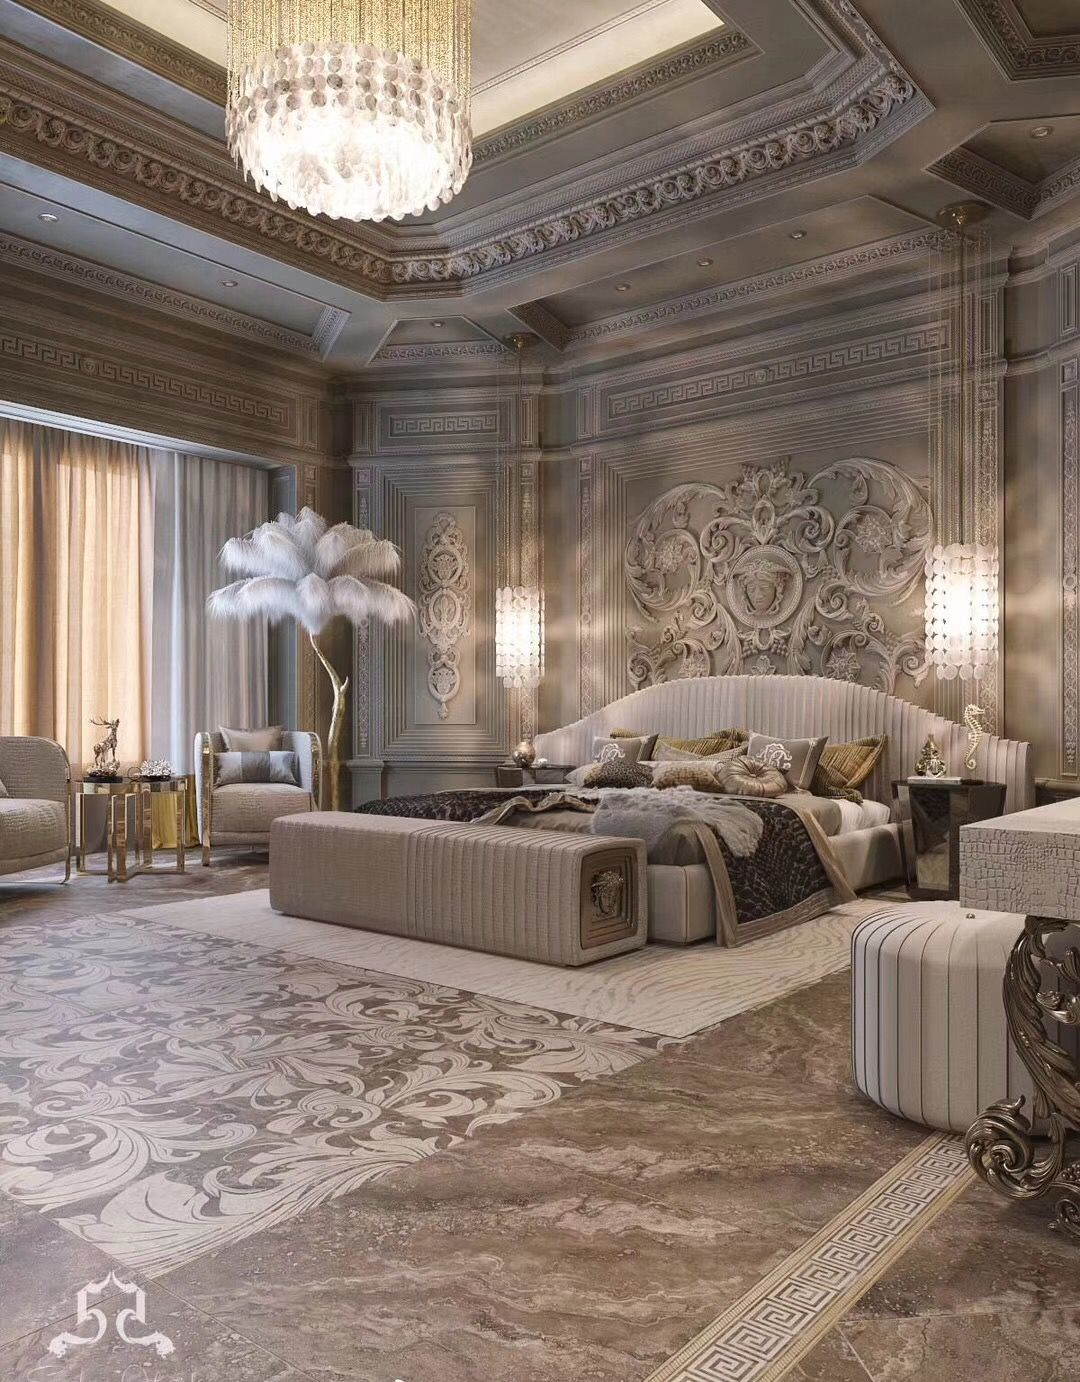 Just For Viewing Interest Huge Bedroom I Like The Feathered Palm And The Color Of The Walls Beaut Luxurious Bedrooms Luxury Bedroom Design Luxury Home Decor